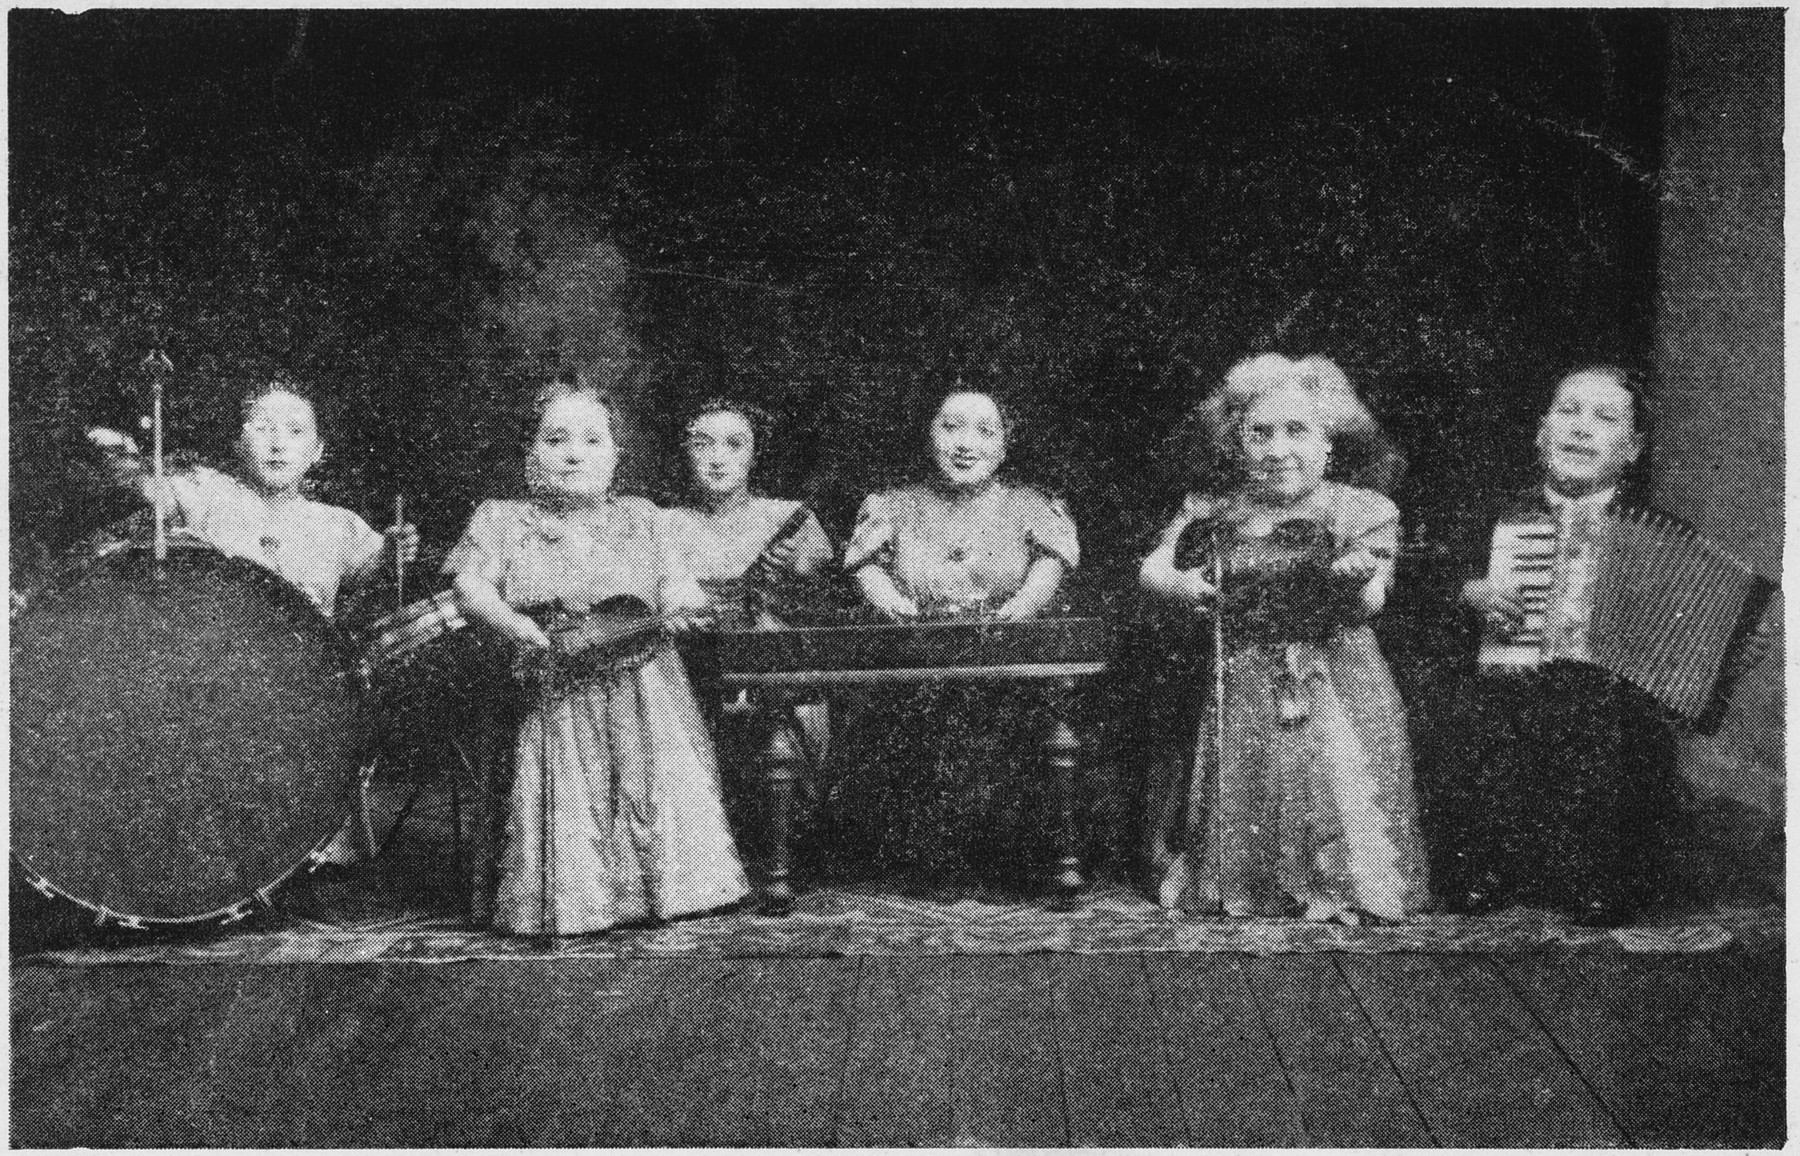 A press photo of the Ovici family of dwarf musicians, which they brought with them to Auschwitz and gave to a guard upon their arrival.  From left to right are Elizabeth, Rozika, Perla, Frieda, Francesca and Micki Ovici.